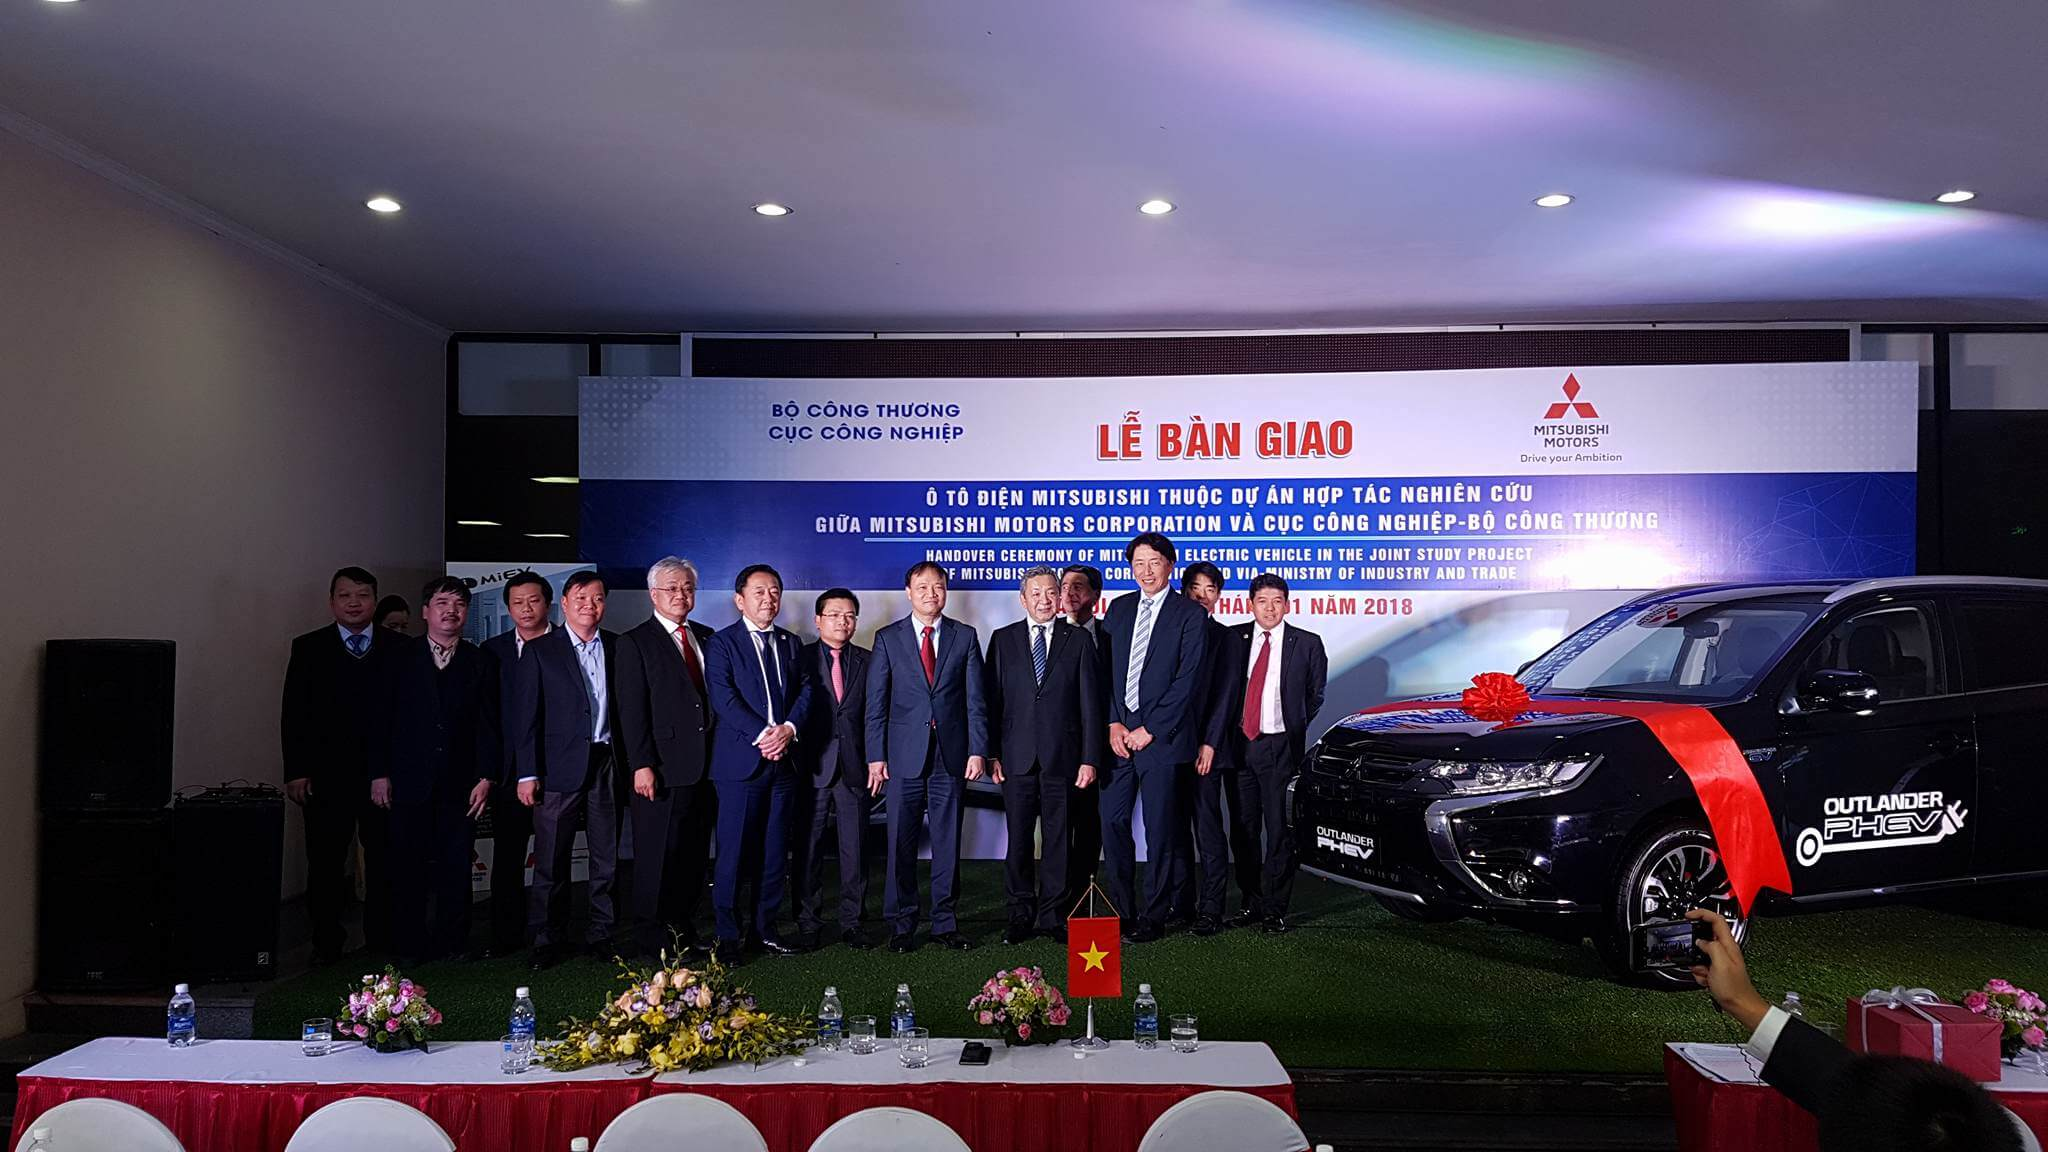 Ministry of Industry and Trade cooperates with Mitsubishi Motors to